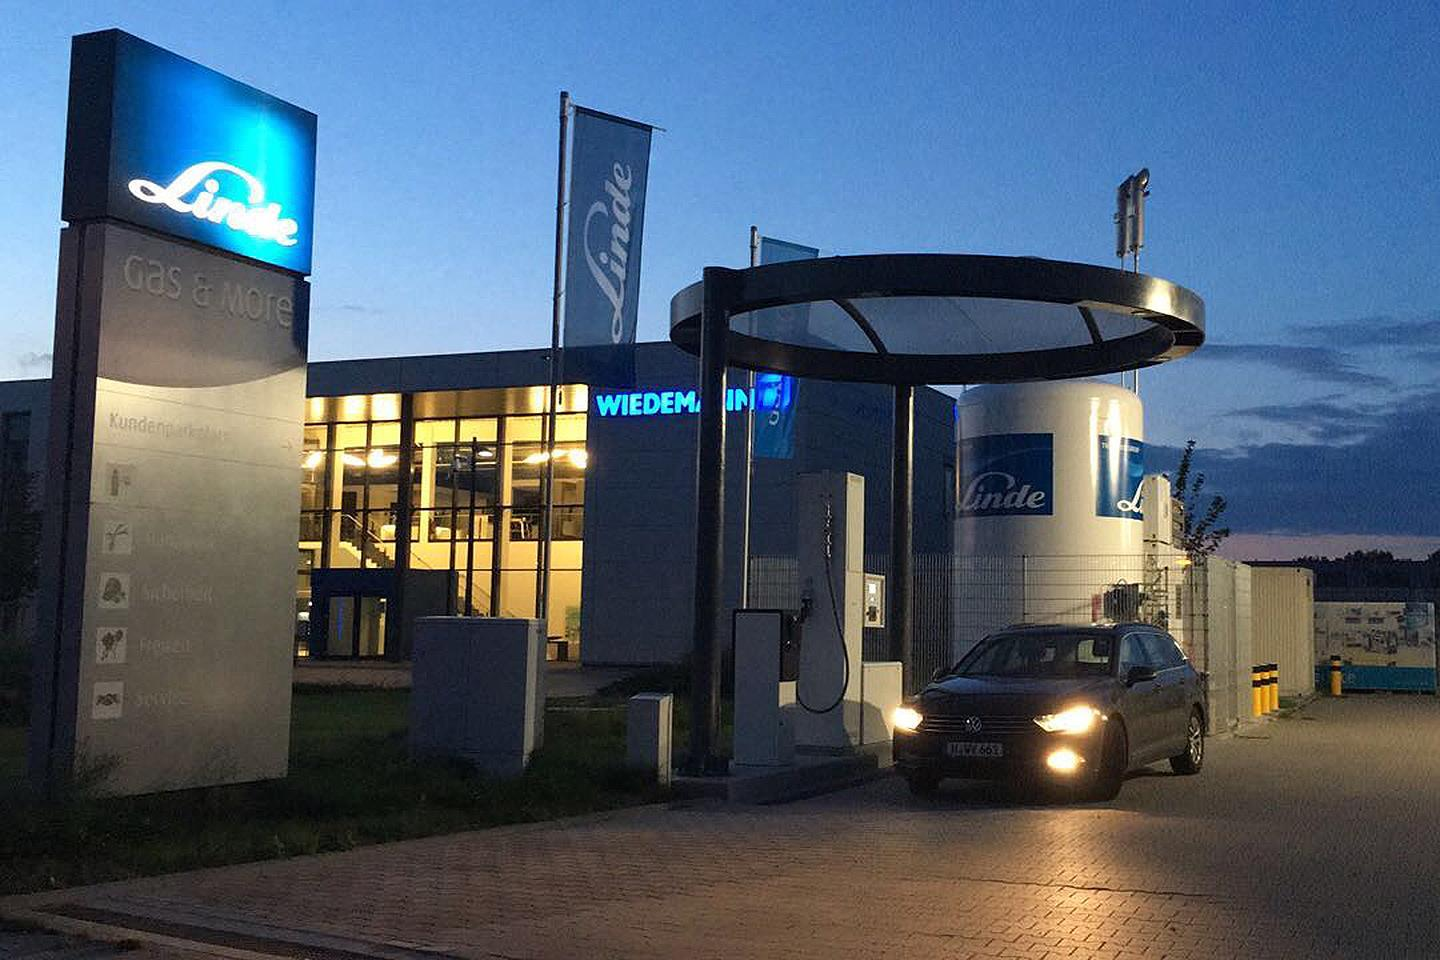 Linde Opens new Hydrogen Staion in Hannover1